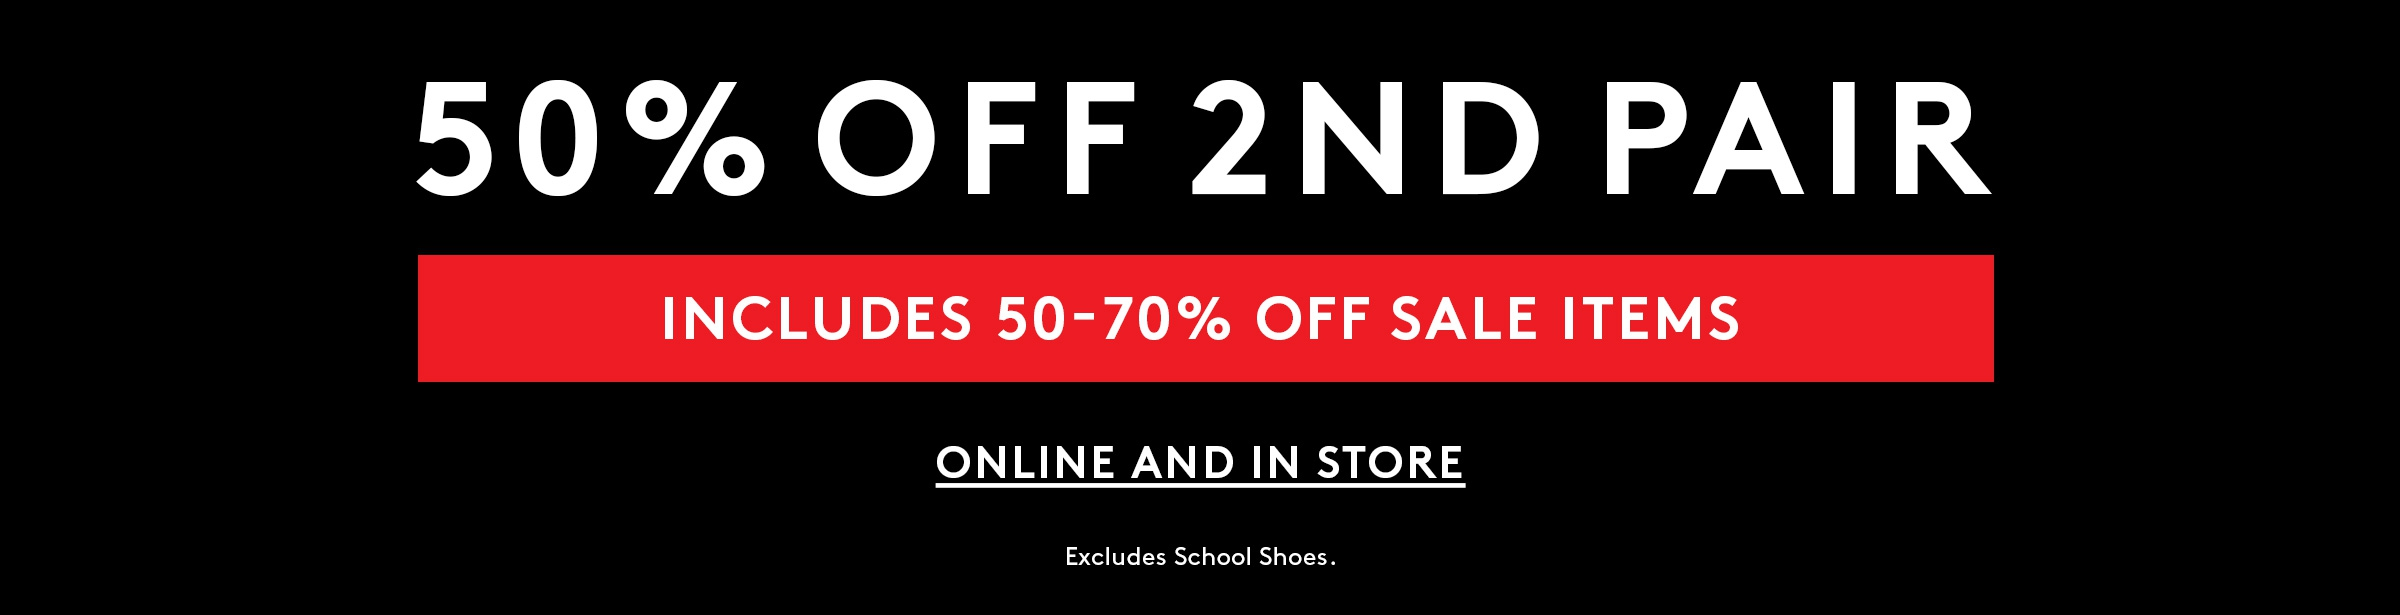 50% Off 2nd Pair